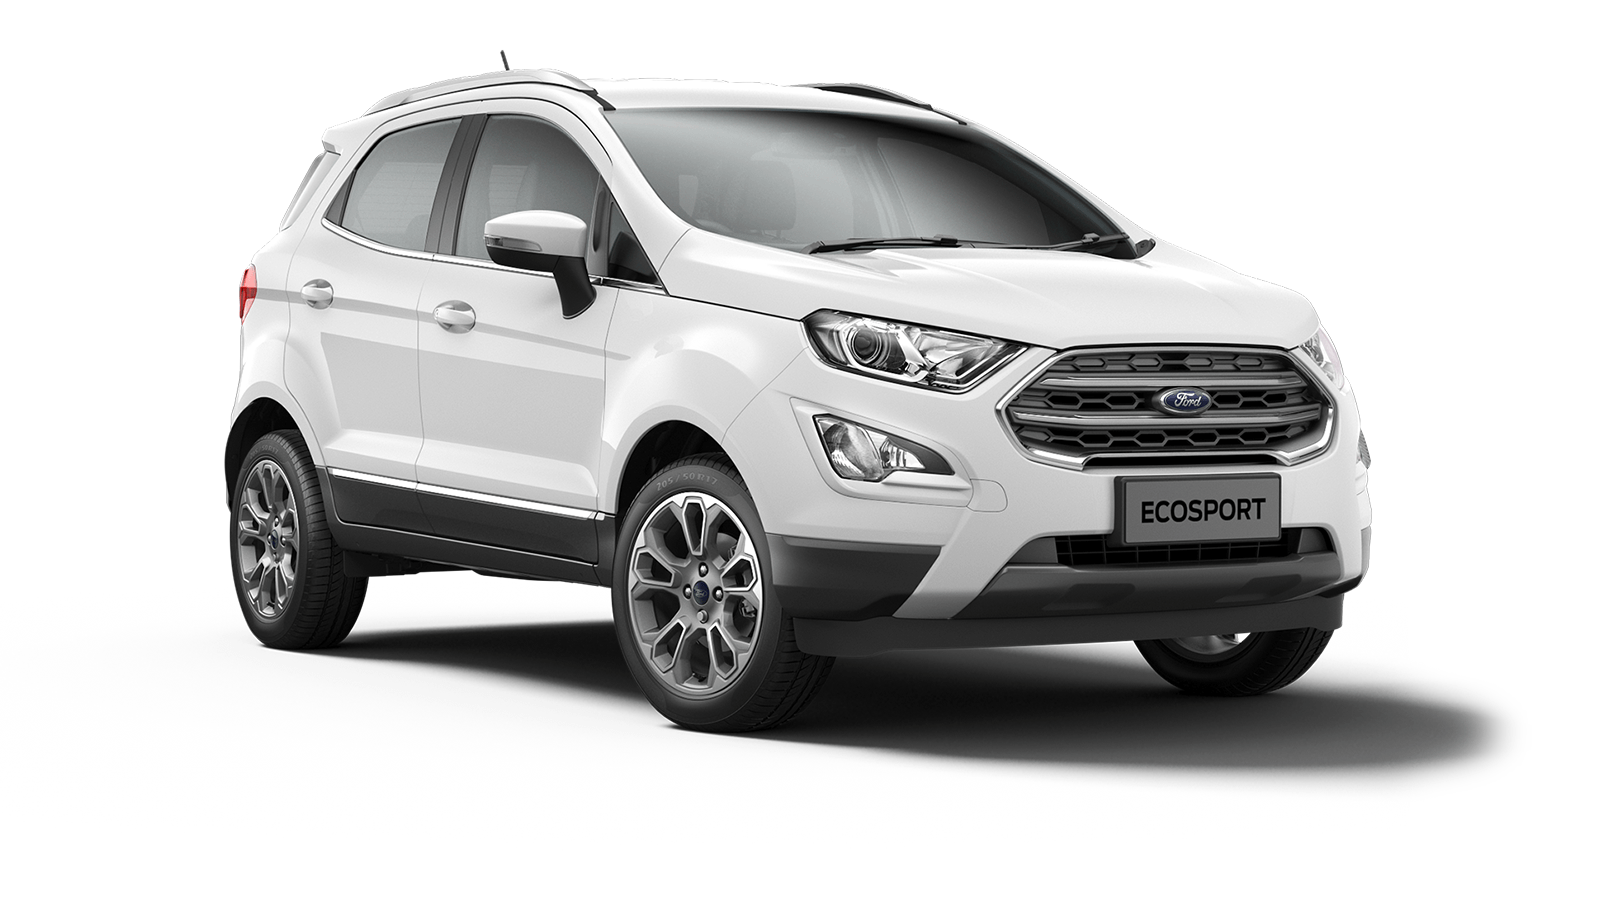 https://www.dealerinternet.co.uk/images/B515%20ECOSPORT/2019/5%20Door/Titanium/FROZEN-WHITE.png